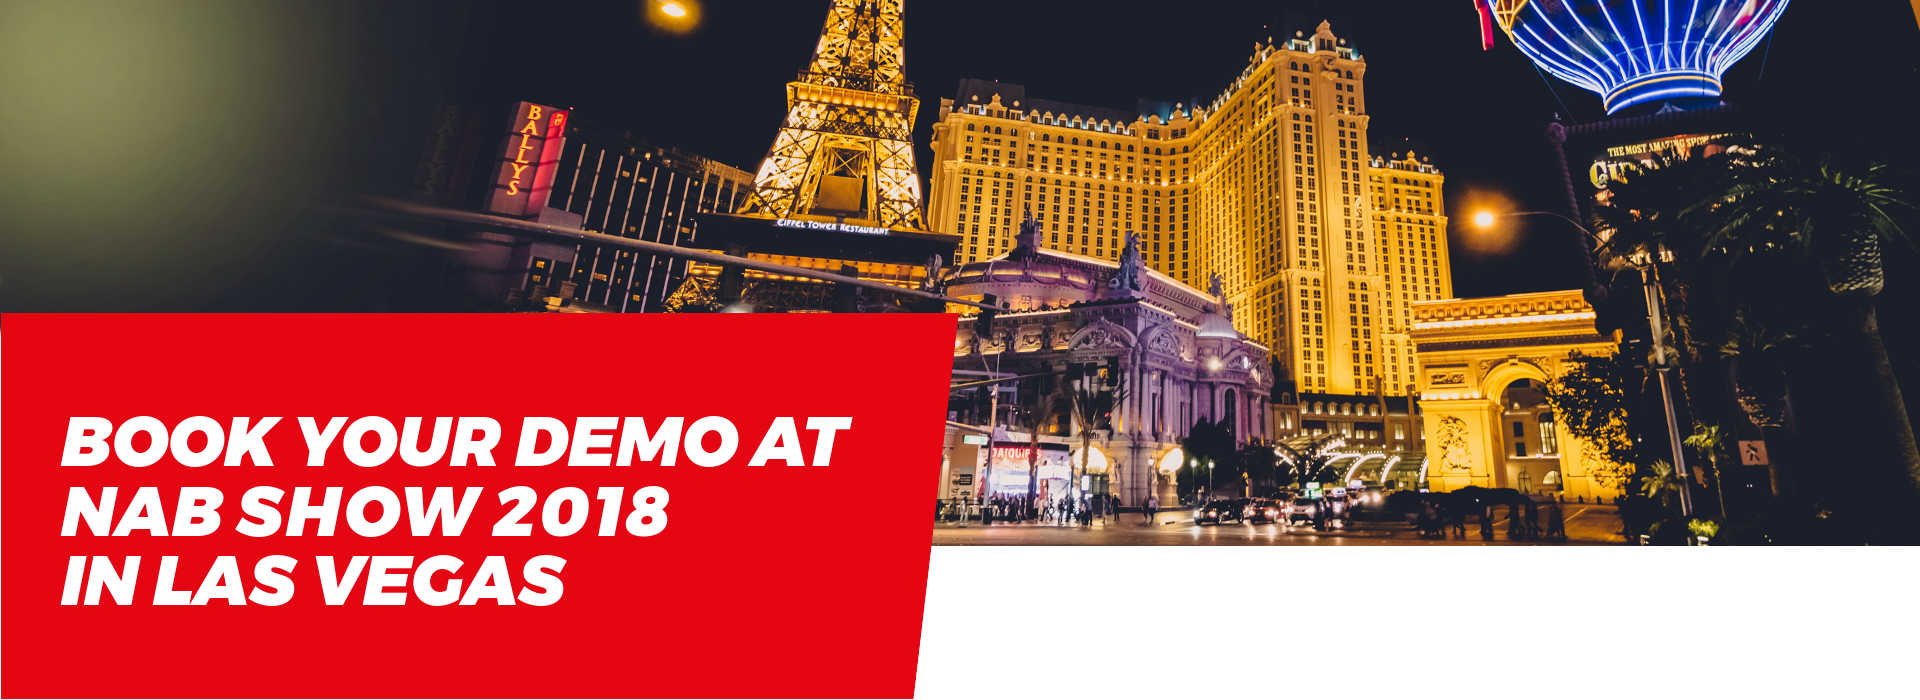 Book your Demo at NABShow 2018